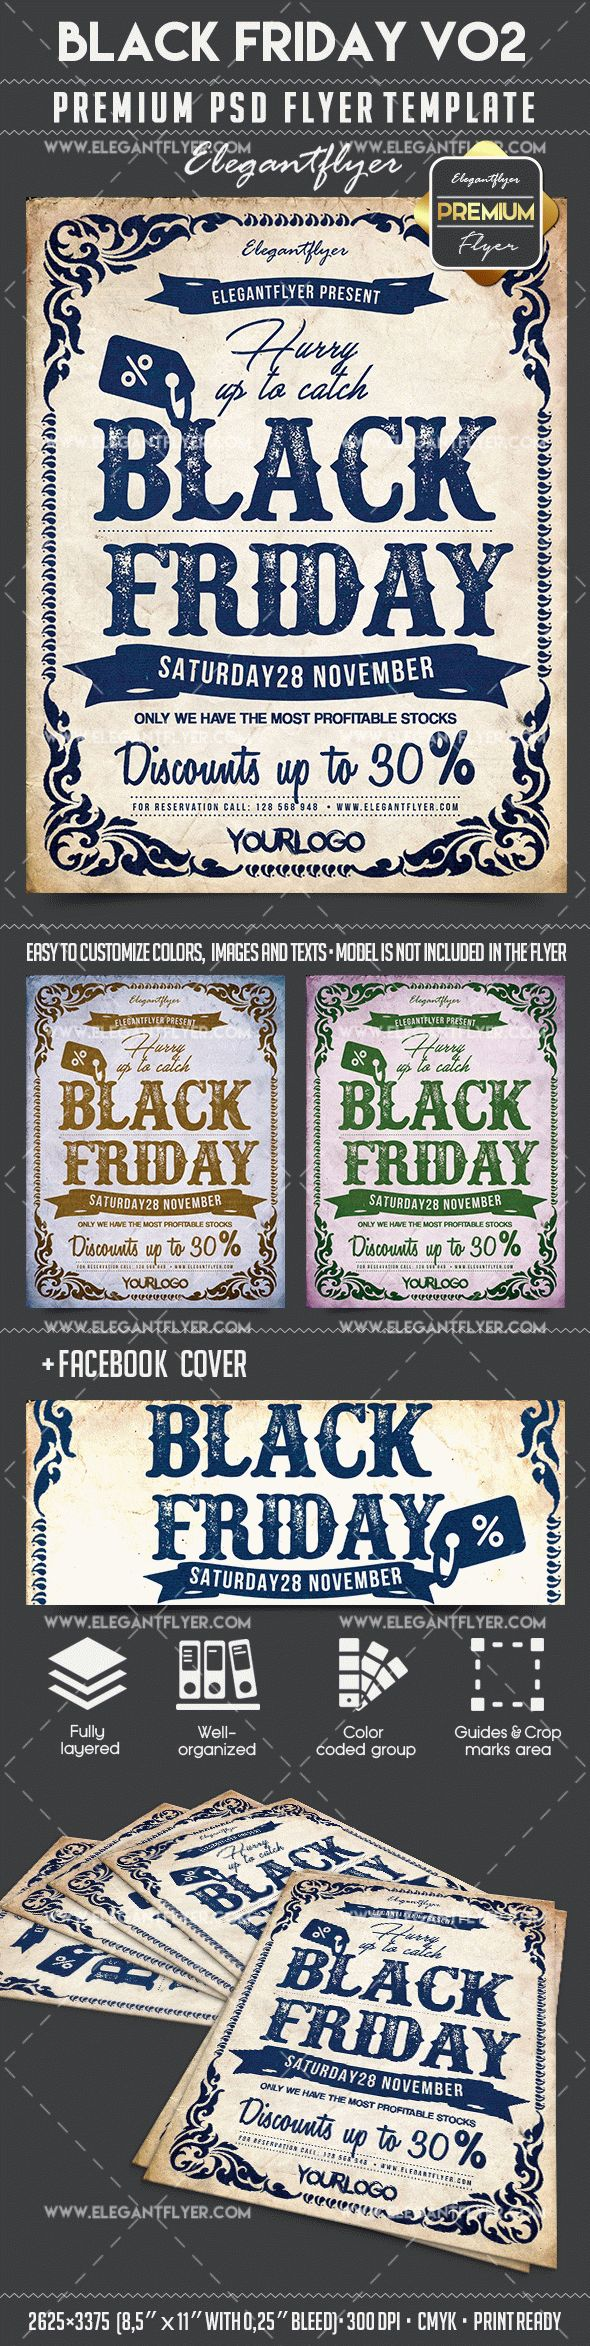 Black Friday V02 – Flyer PSD Template + Facebook Cover